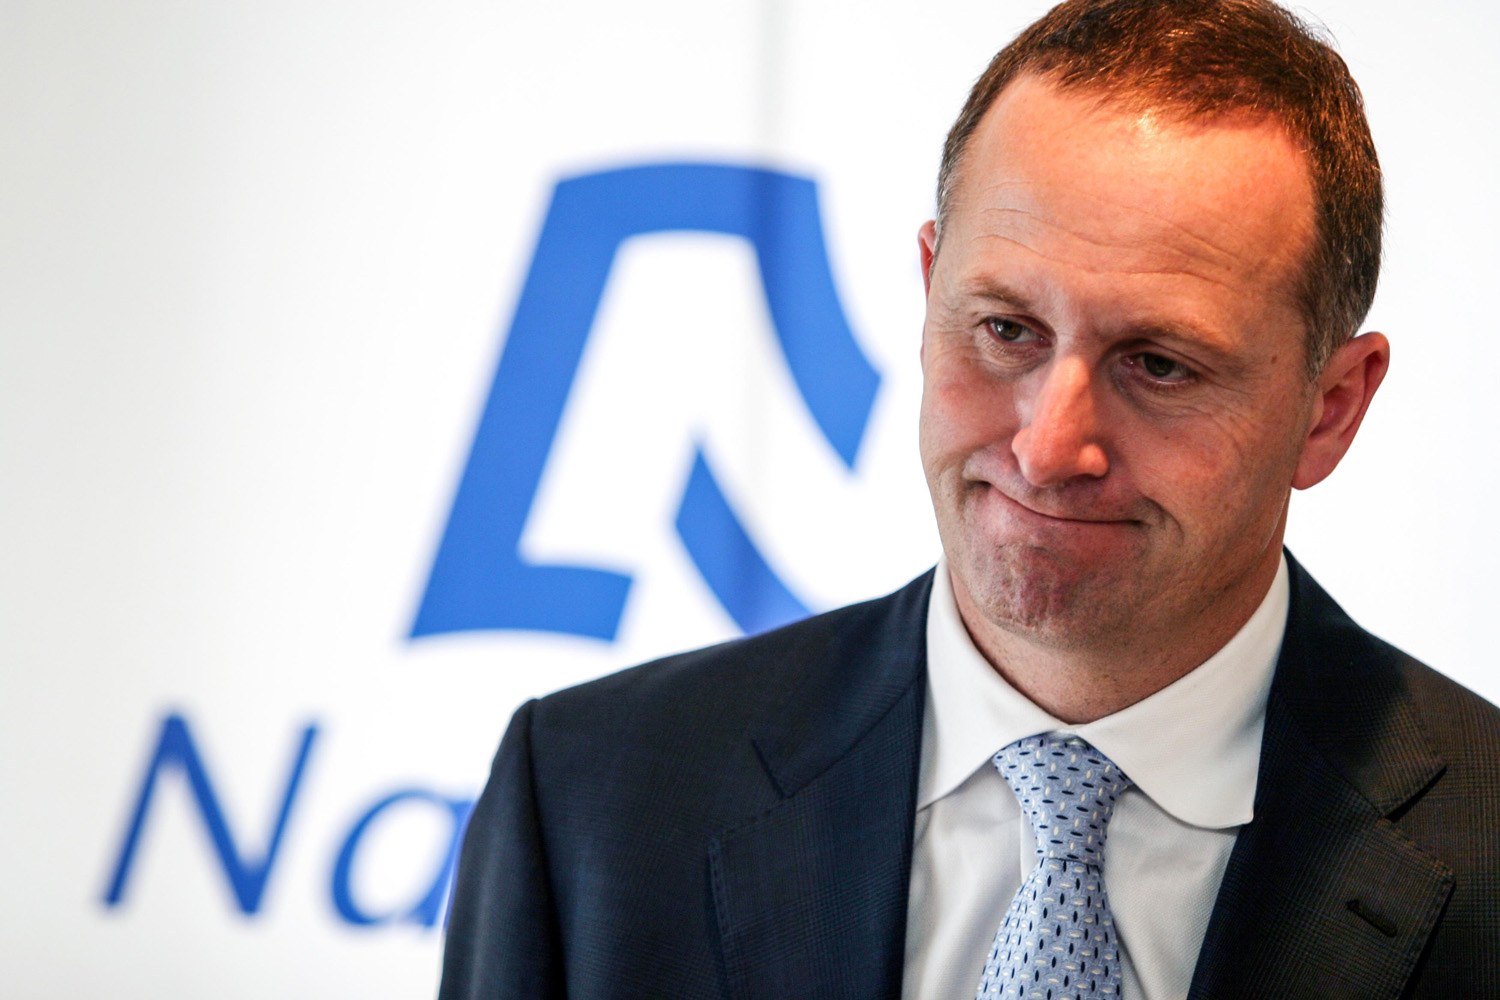 John Key (Former Prime Minister of NZ)